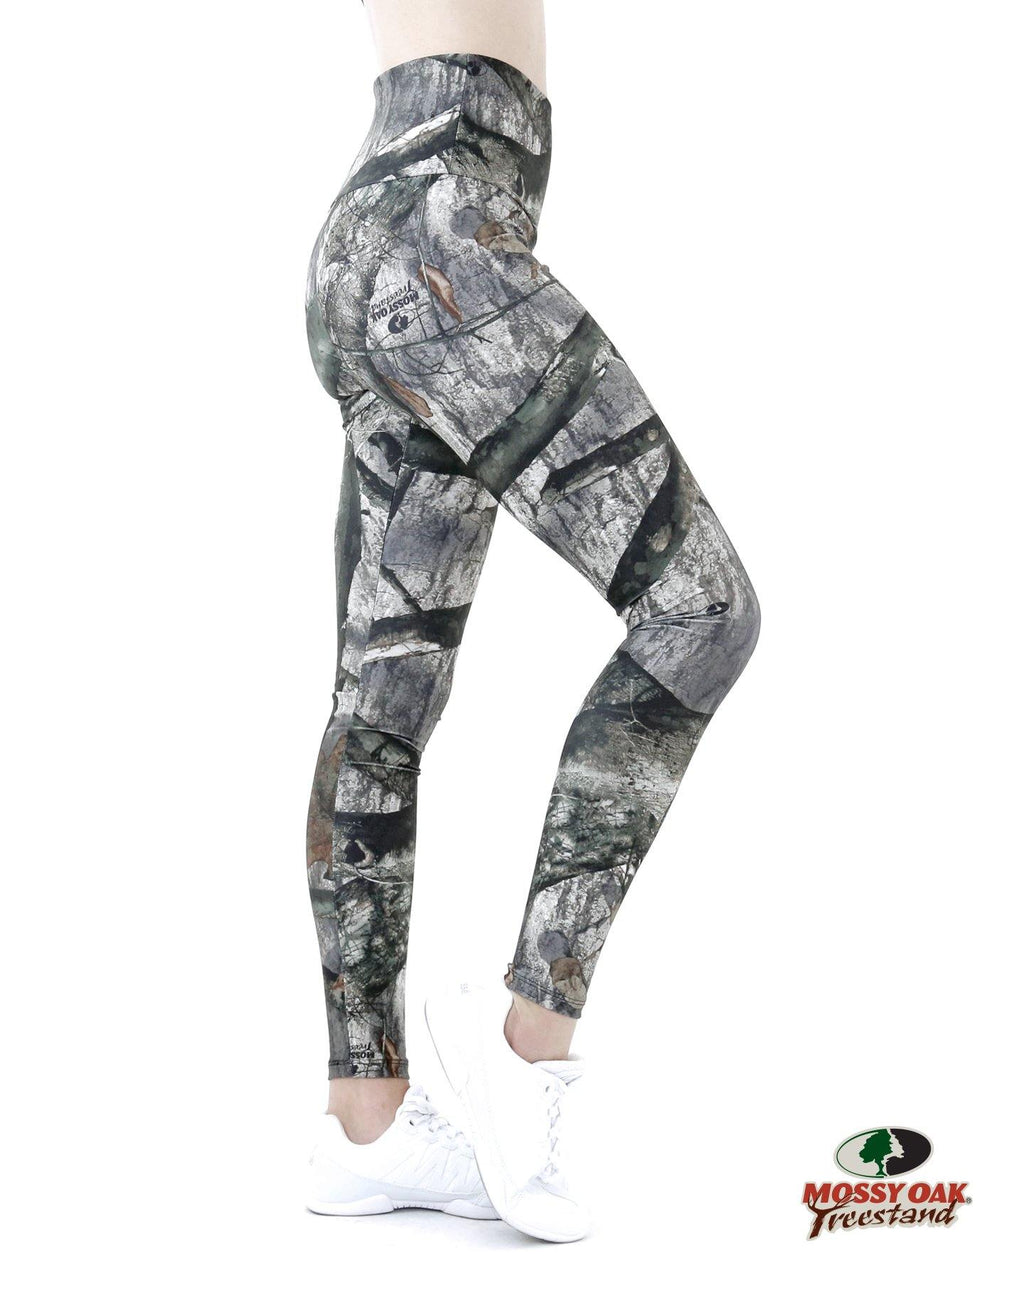 Apsara Leggings High Waist Full Length, Mossy Oak Treestand